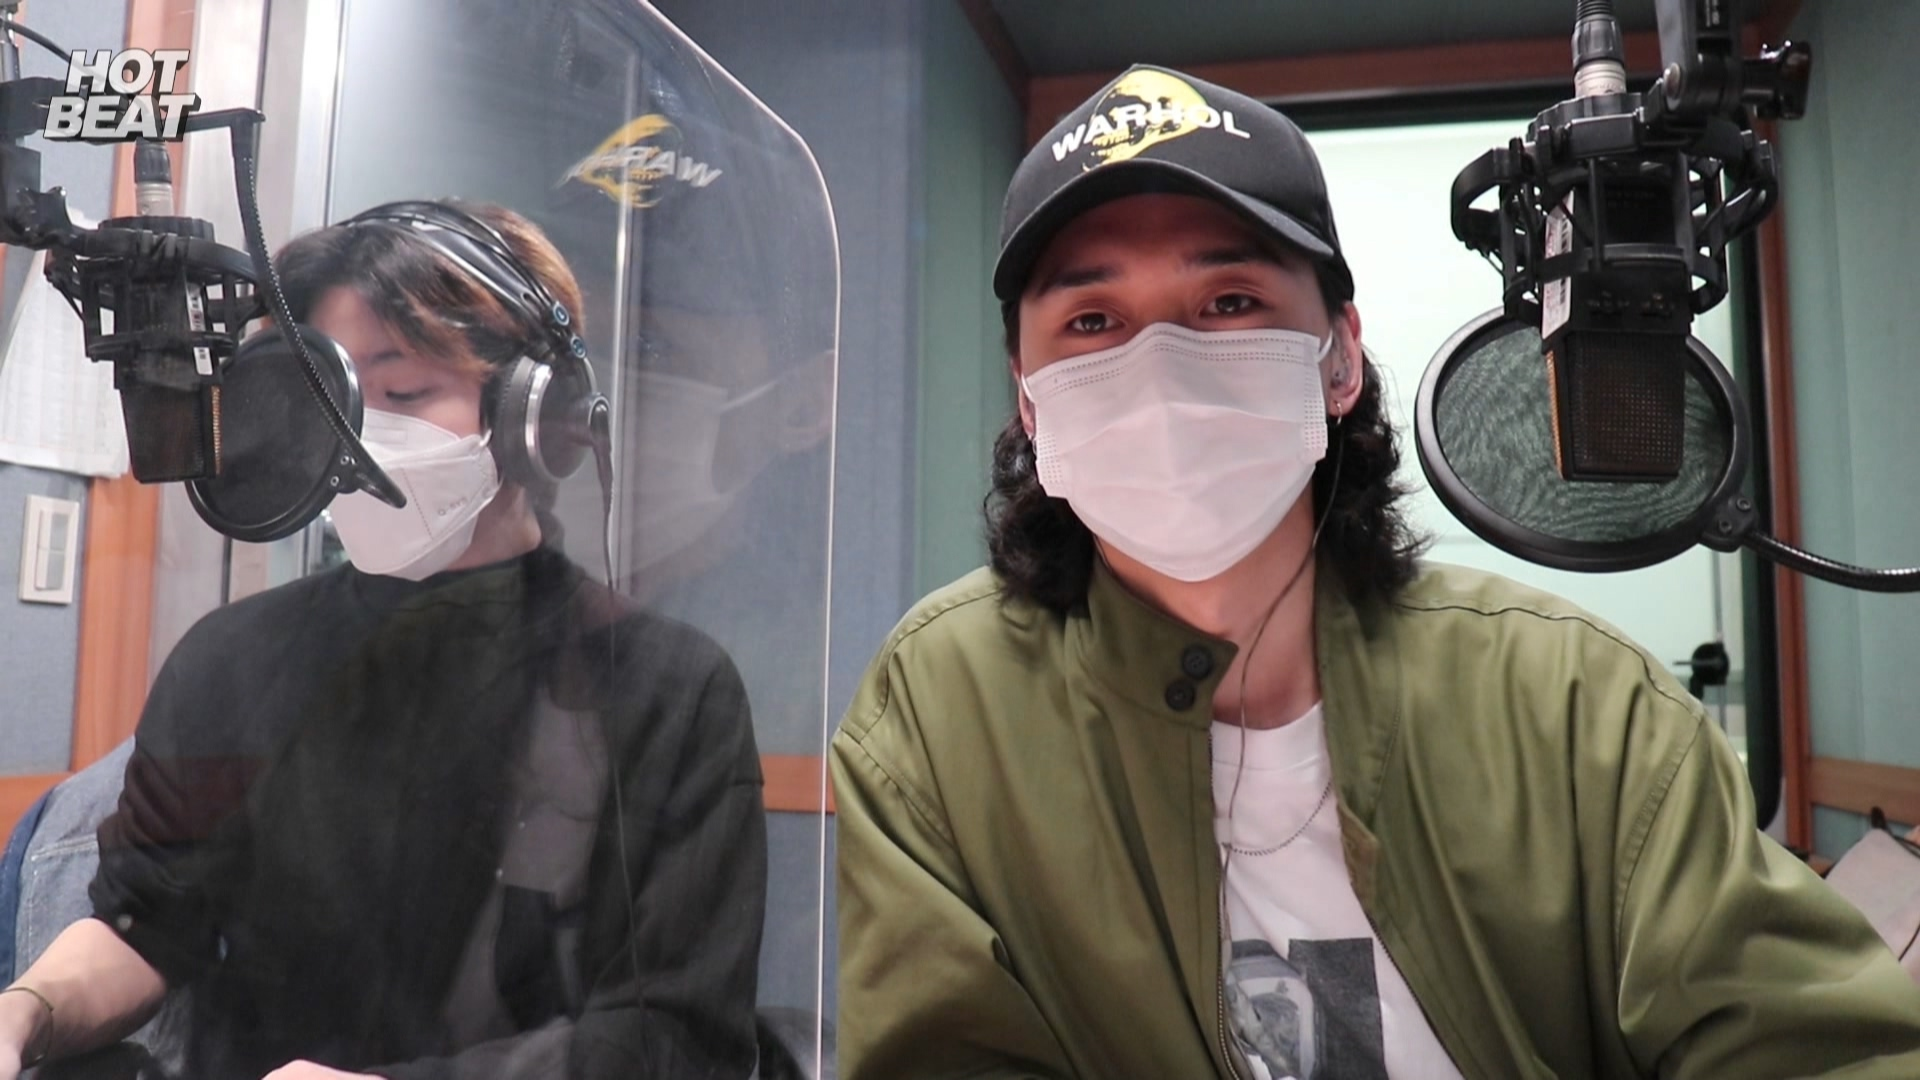 [Hot Beat] What's your PICK? with Maddox 마독스 : HODI and MADDOX's PICK! PICK! PICK!